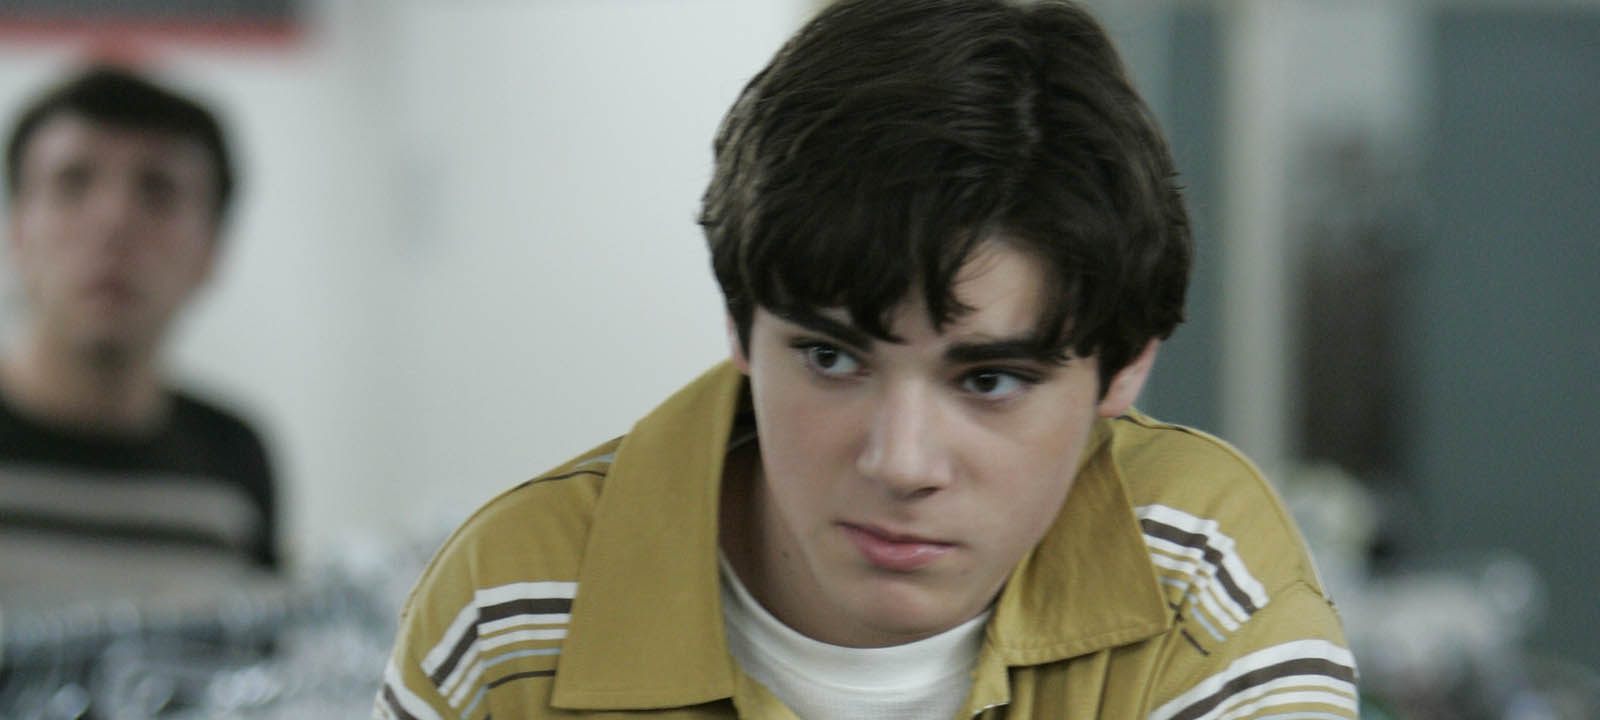 BB_105_QA_RJMitte